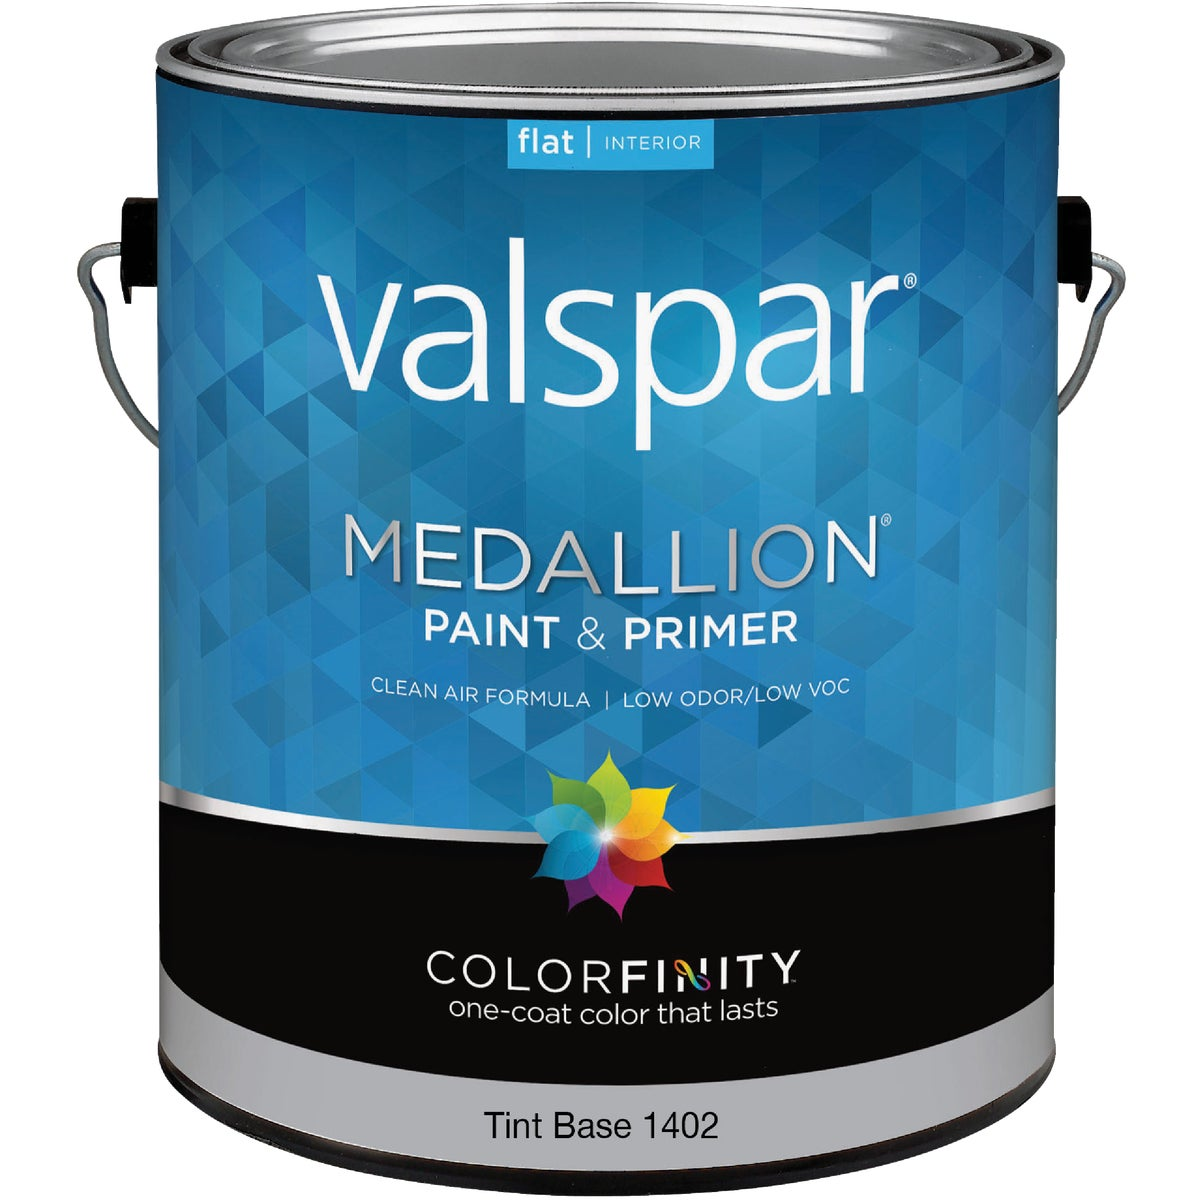 INT FLAT TINT BS PAINT - 027.0001402.007 by Valspar Corp